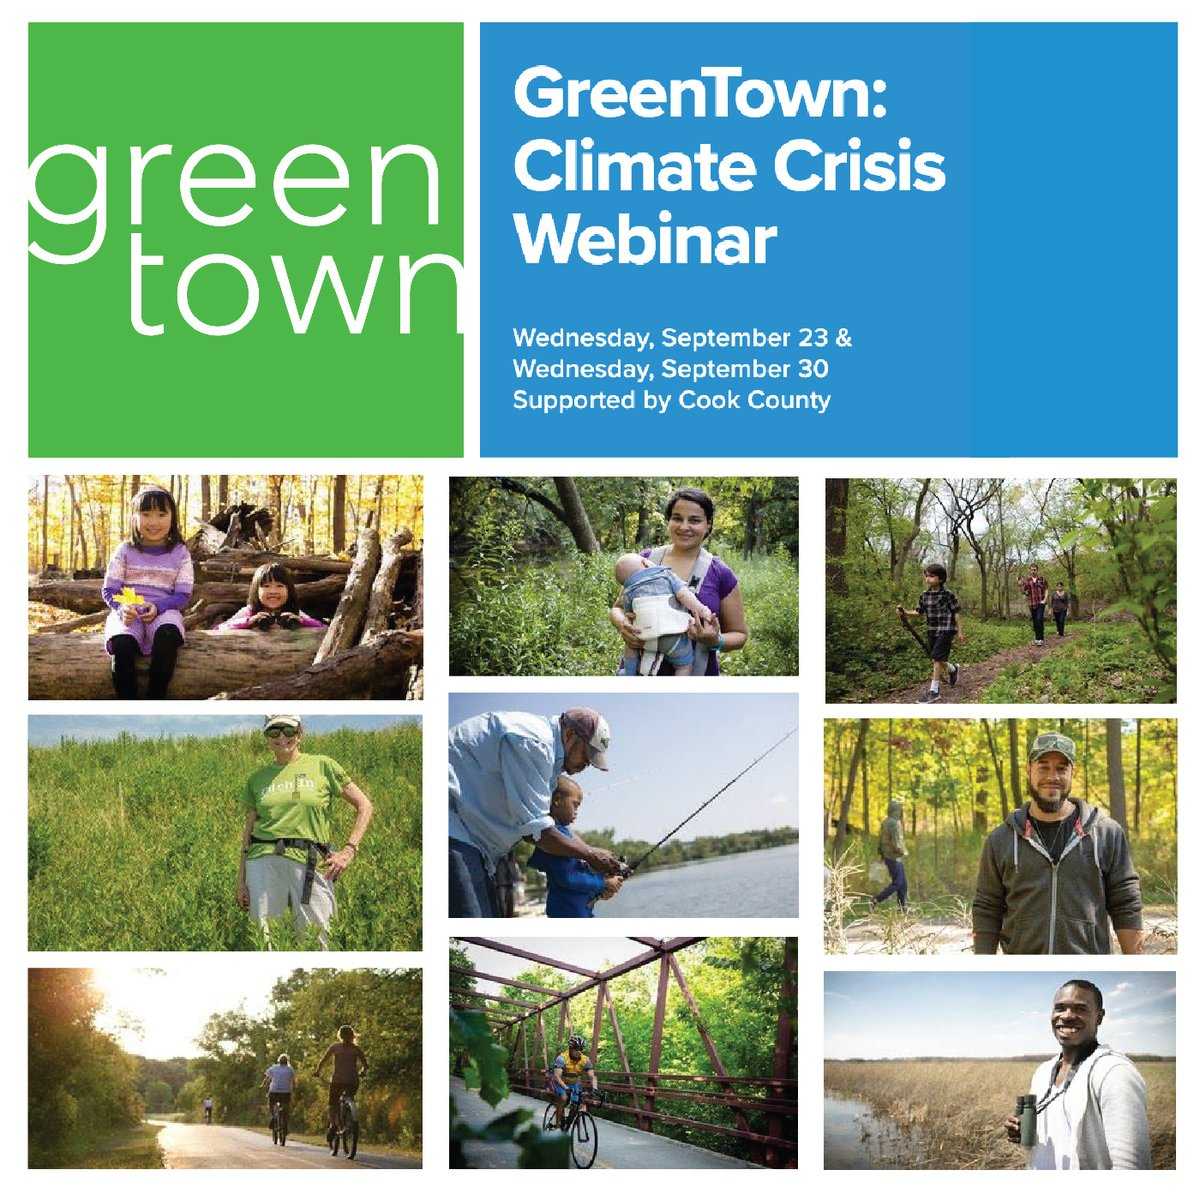 There's still time to register for a special screening of The Guardians on 9/28 and day two of GreenTown: Climate Crisis on 9/30. To register, go to: .